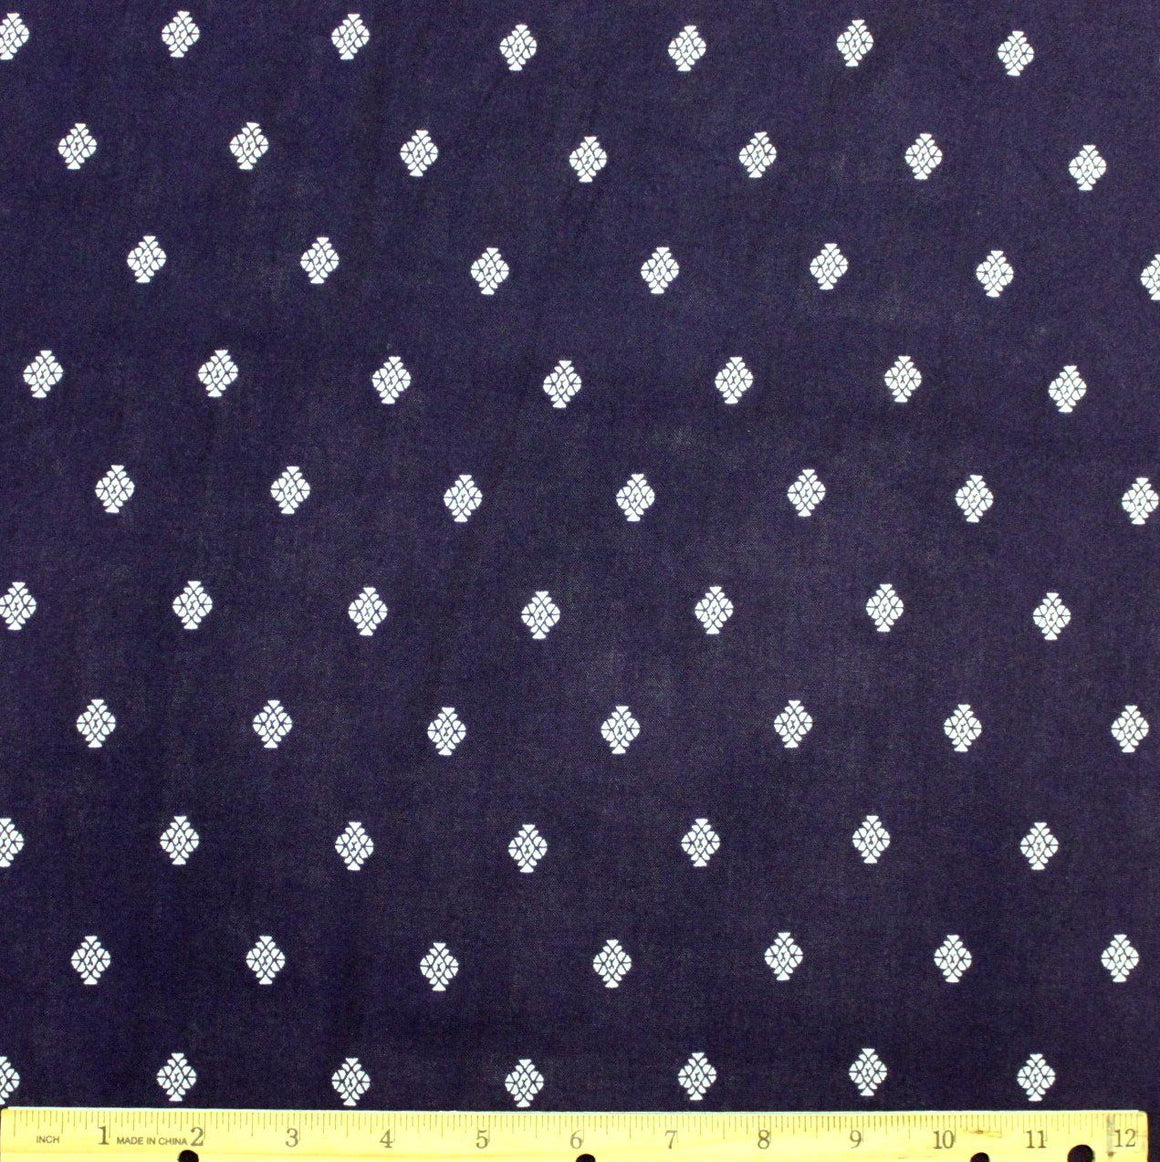 Navy and White Geometric Diamond Fleur Rayon Challis, 1 yard